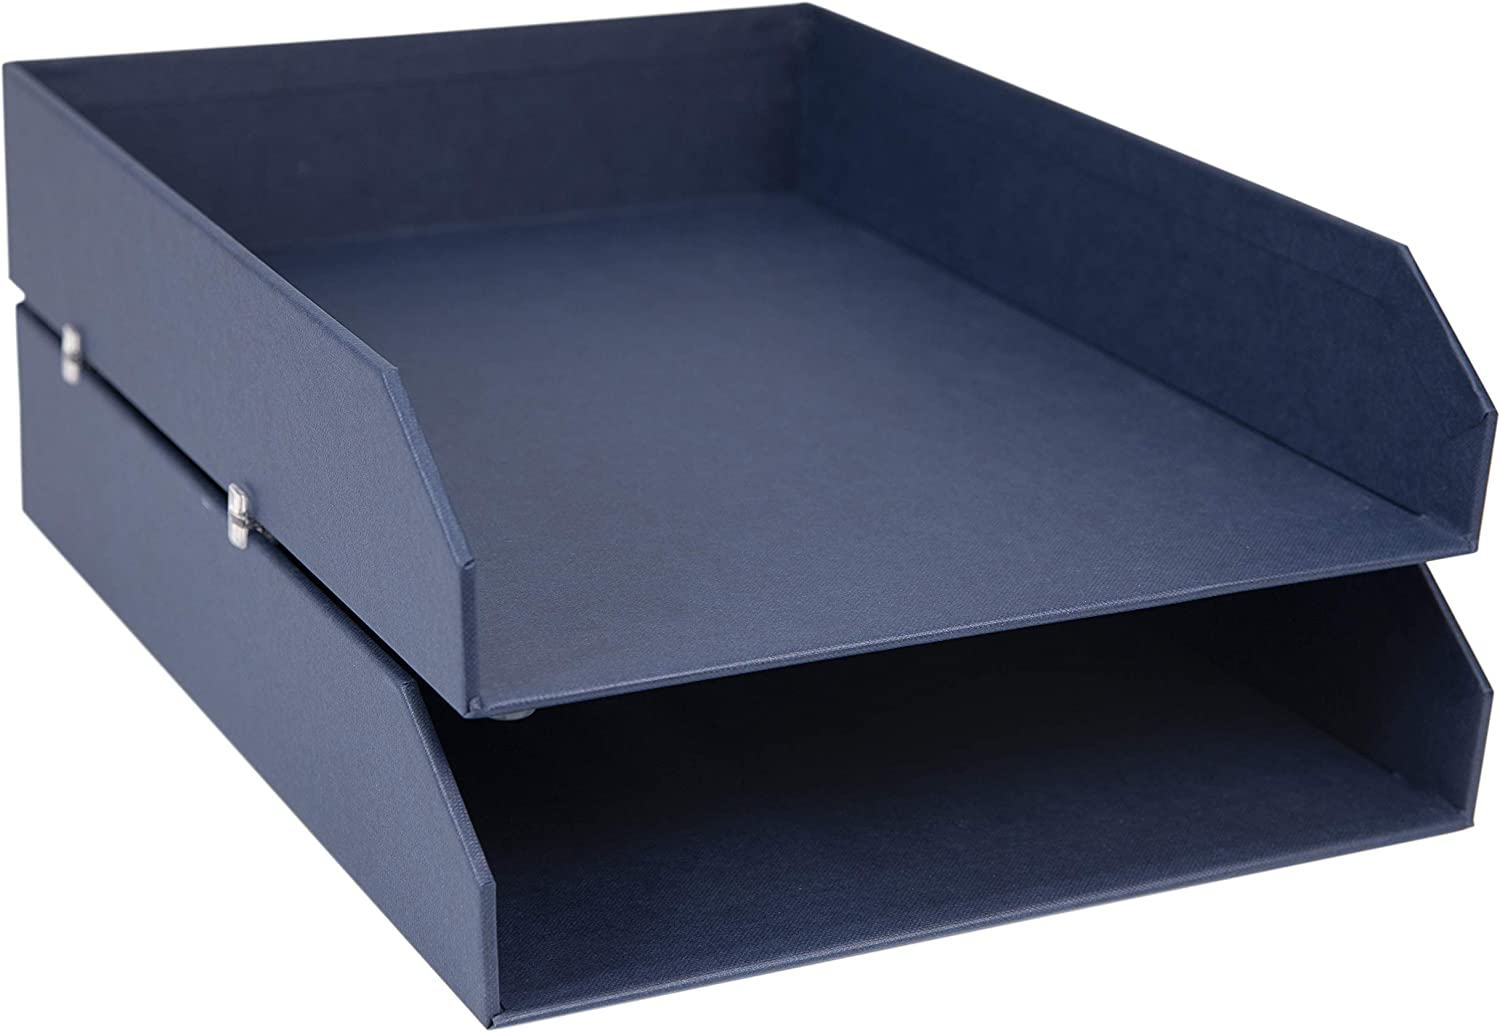 Bigso Hakan Fiberboard Two Tier Stackable Letter/Document Tray, 2.5 x 9 x 12.2 in, Blue